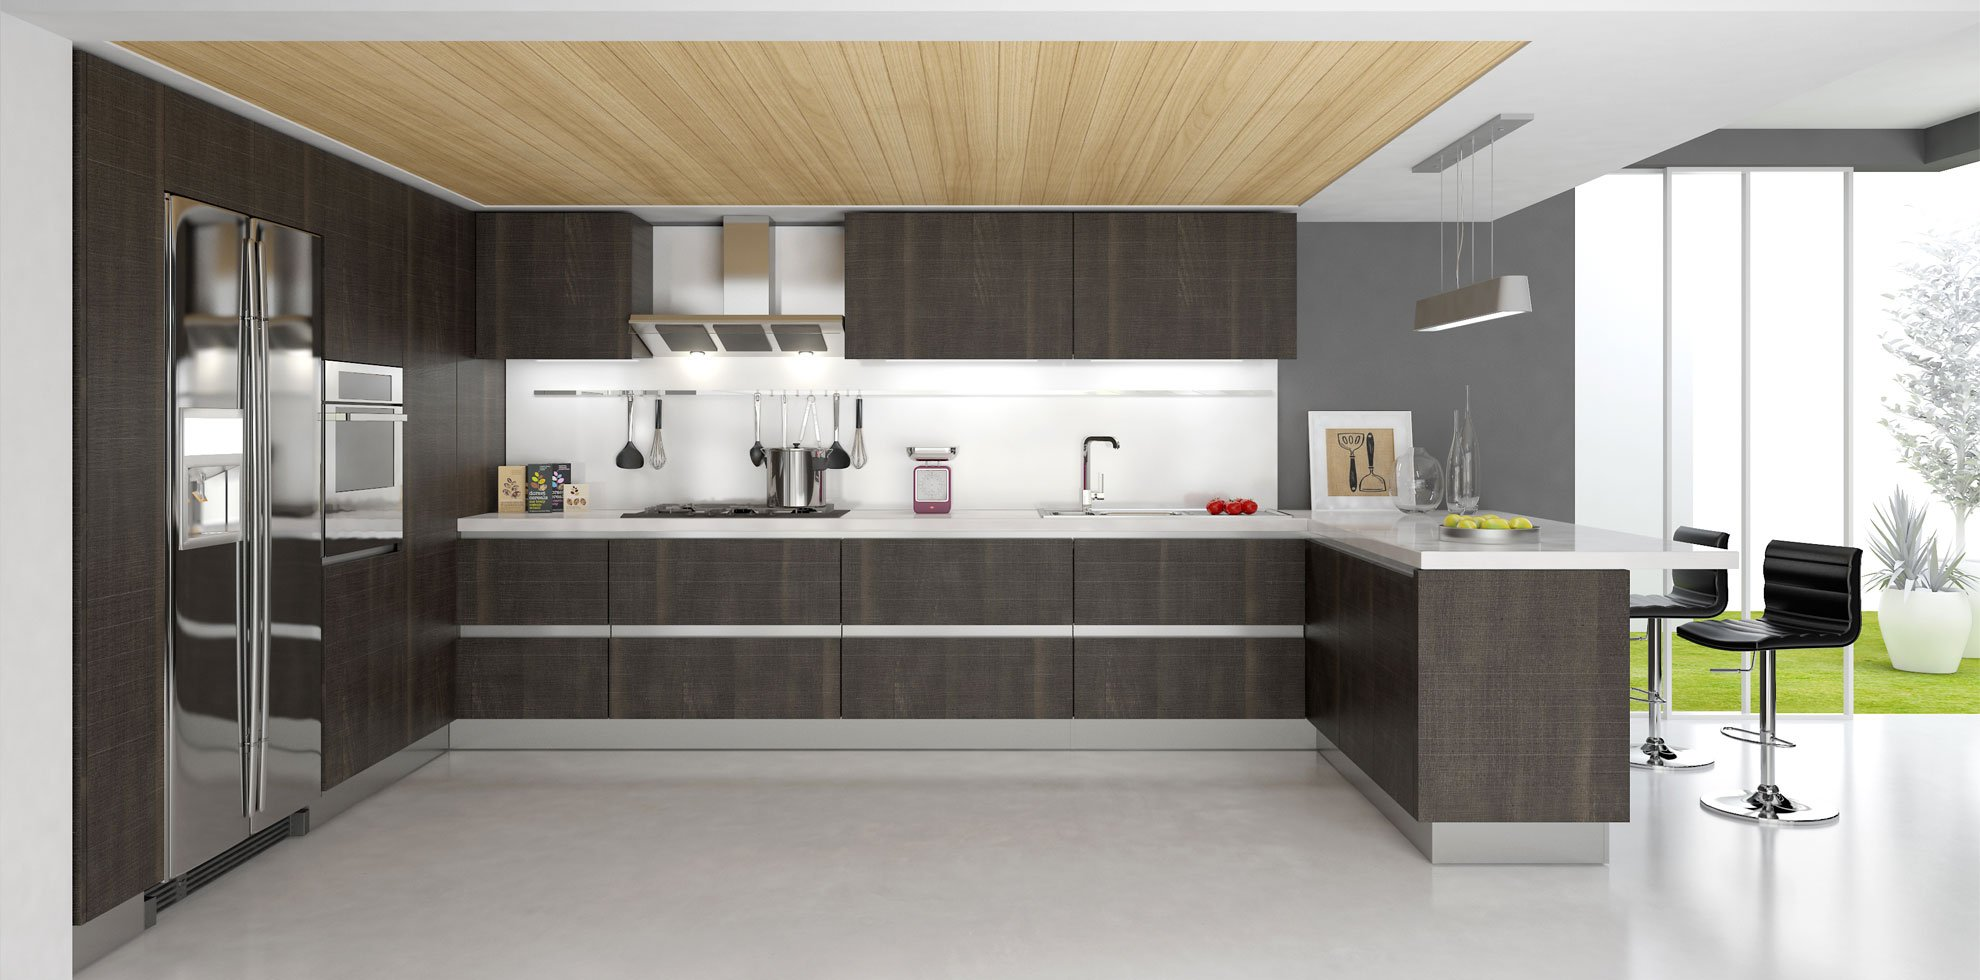 20 prime examples of modern kitchen cabinets for Small kitchen designs pictures and samples